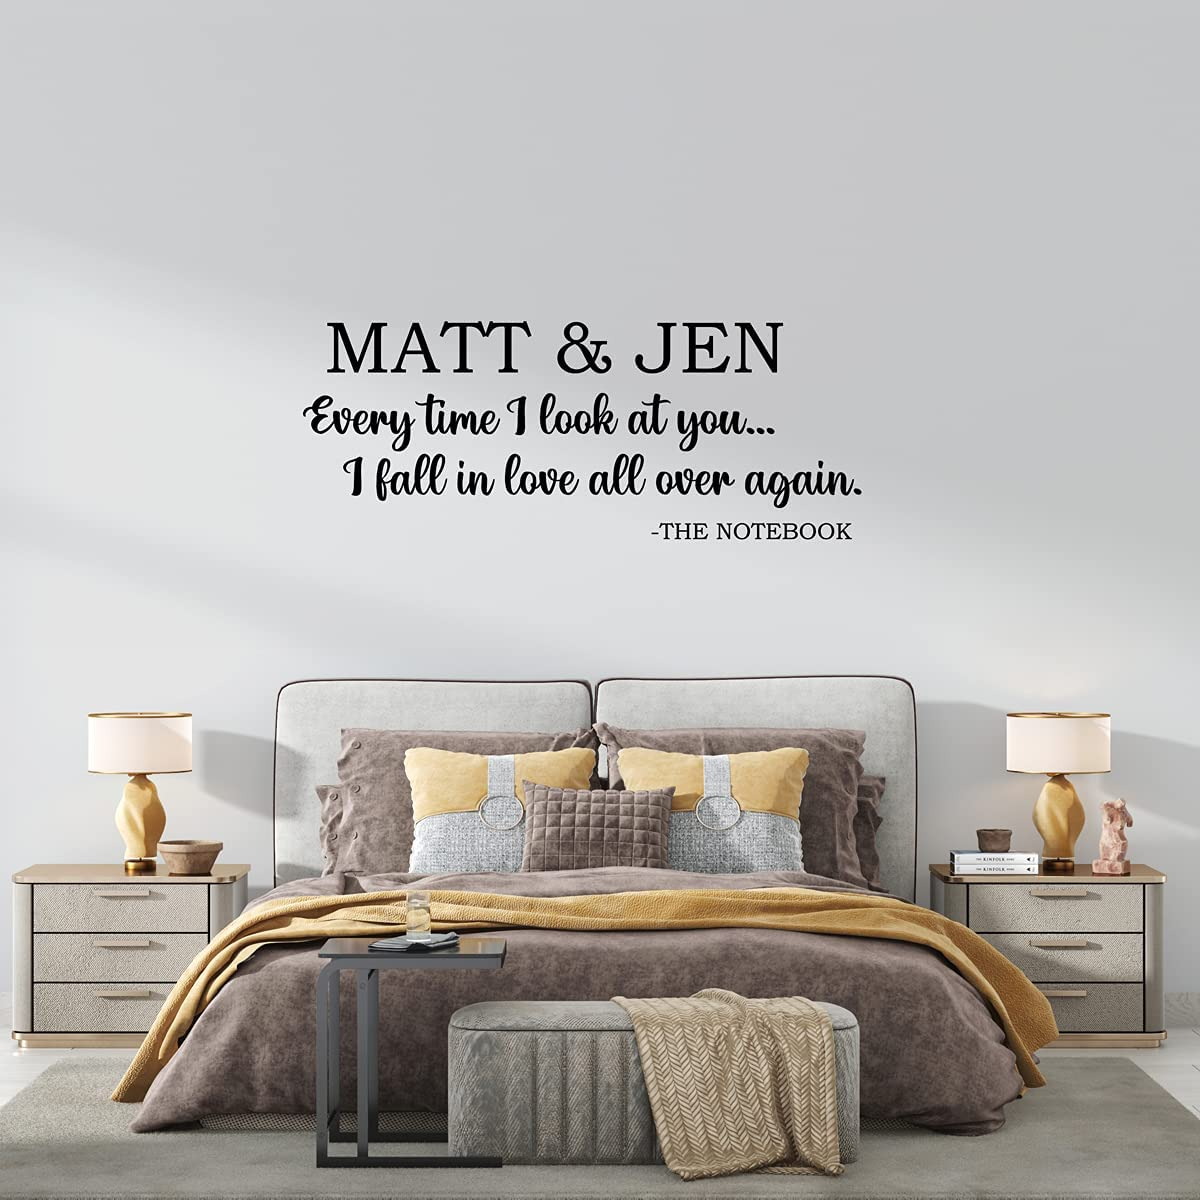 ZIHENG Custom Couples Husband and Wife Name and time Quotes Home Decor Wall Stickers Kids Room Nature Decor Personalized Wall Decal